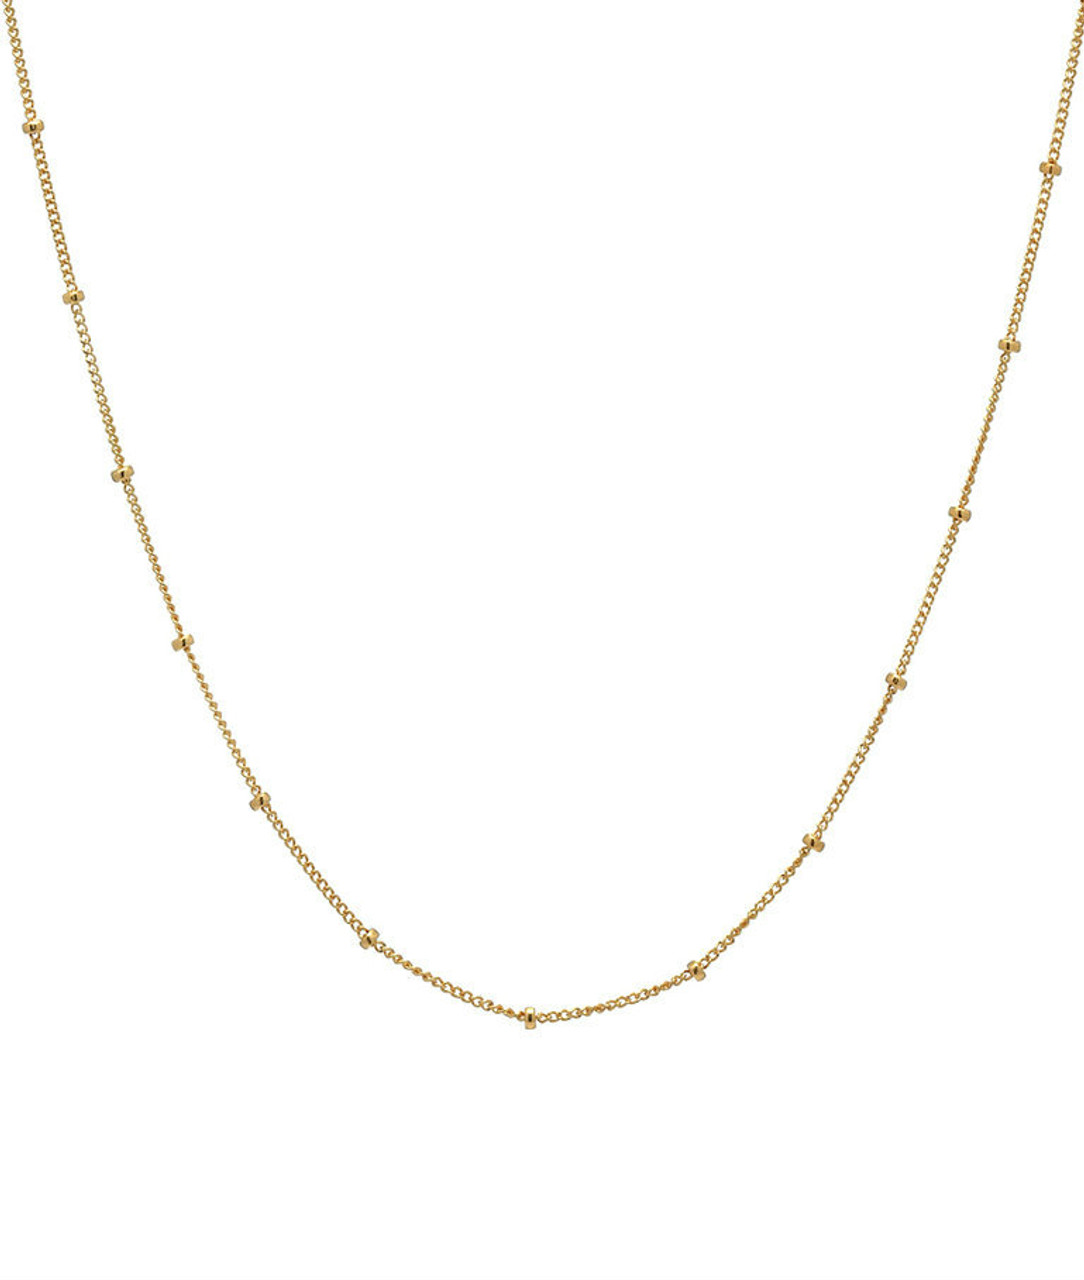 14k. gold segment chain link necklace